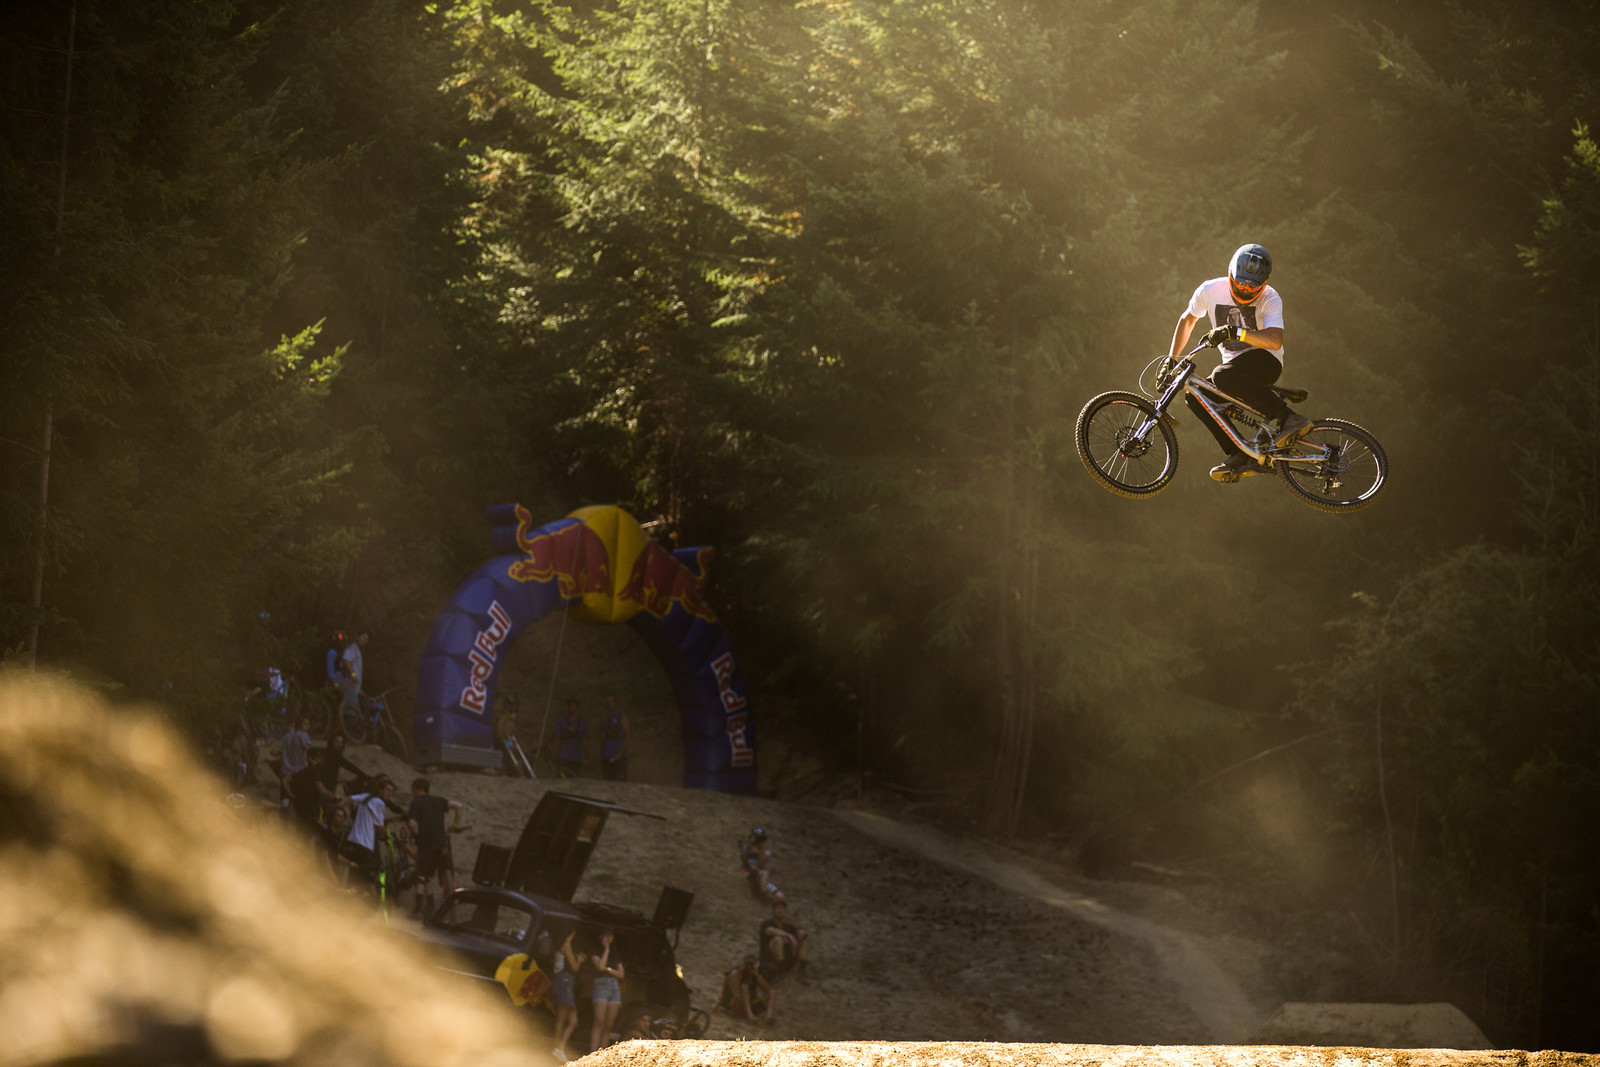 Emmerson Wilkinson - McGazza Fest Dream Track Jam - Mountain Biking Pictures - Vital MTB